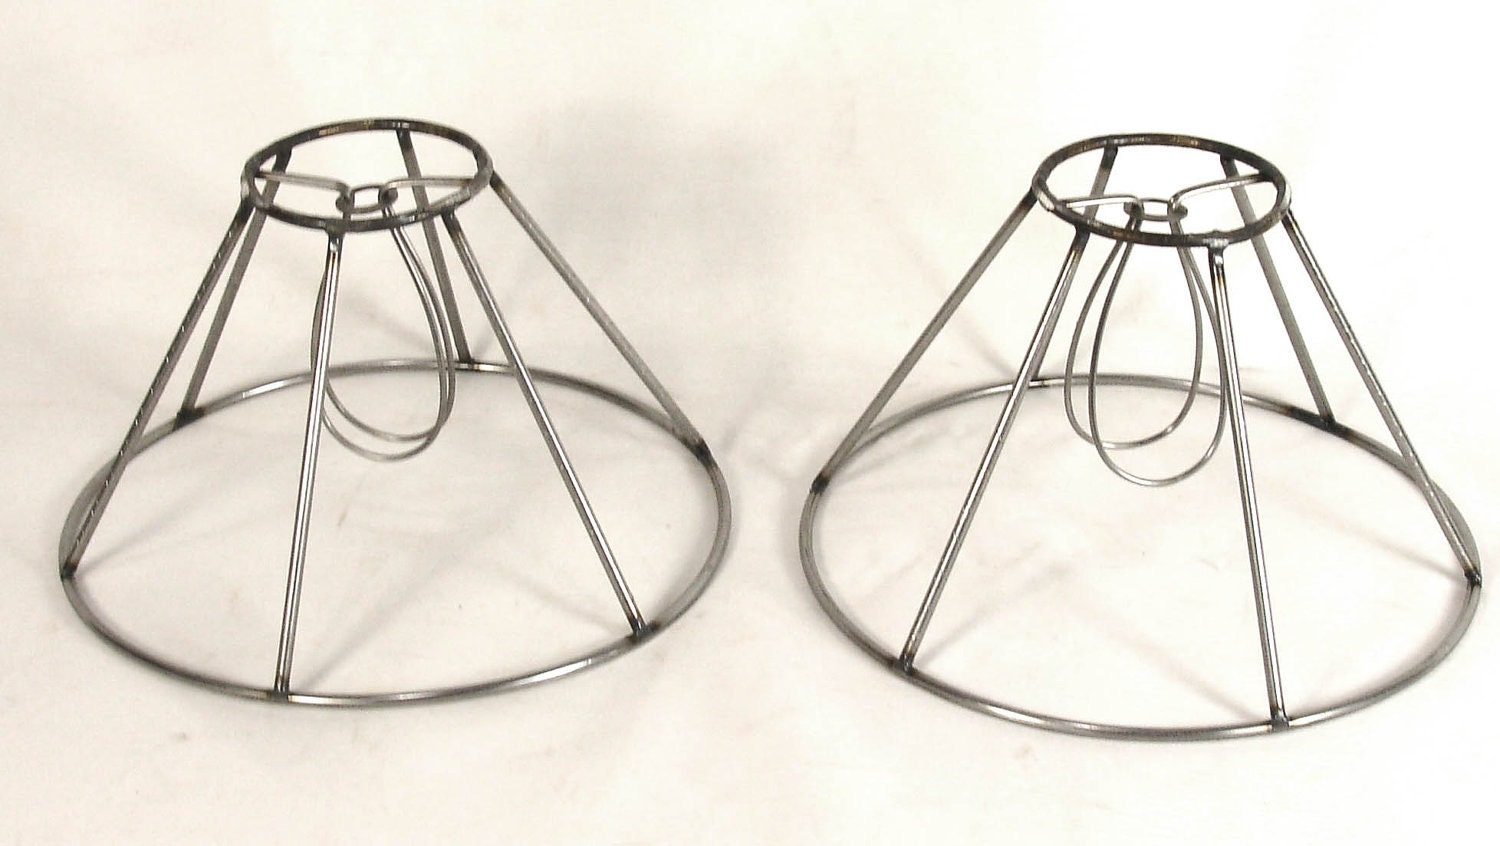 2 Lamp Shade Frames For Small Table Or Chandelier Wire